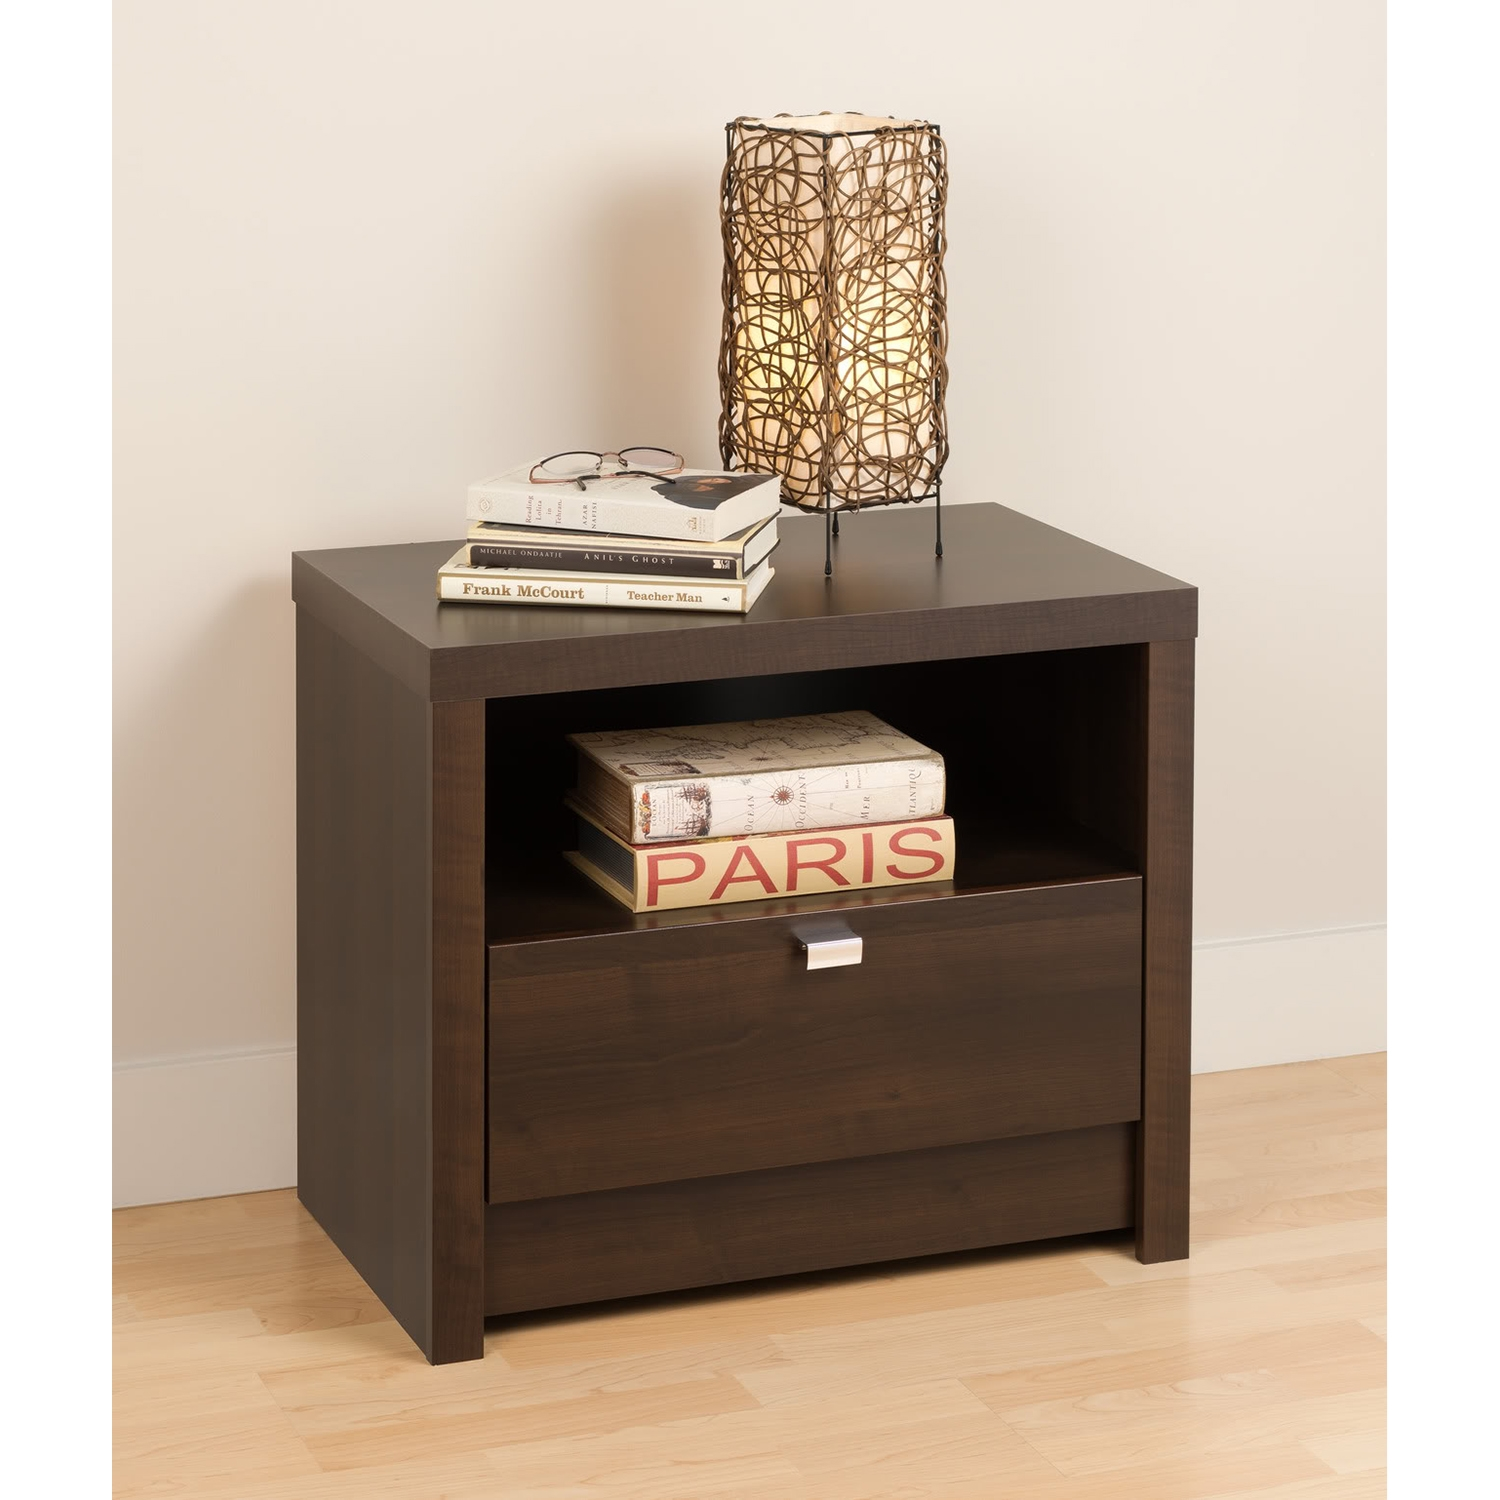 Series 9 Designer 1-Drawer Nightstand - Espresso